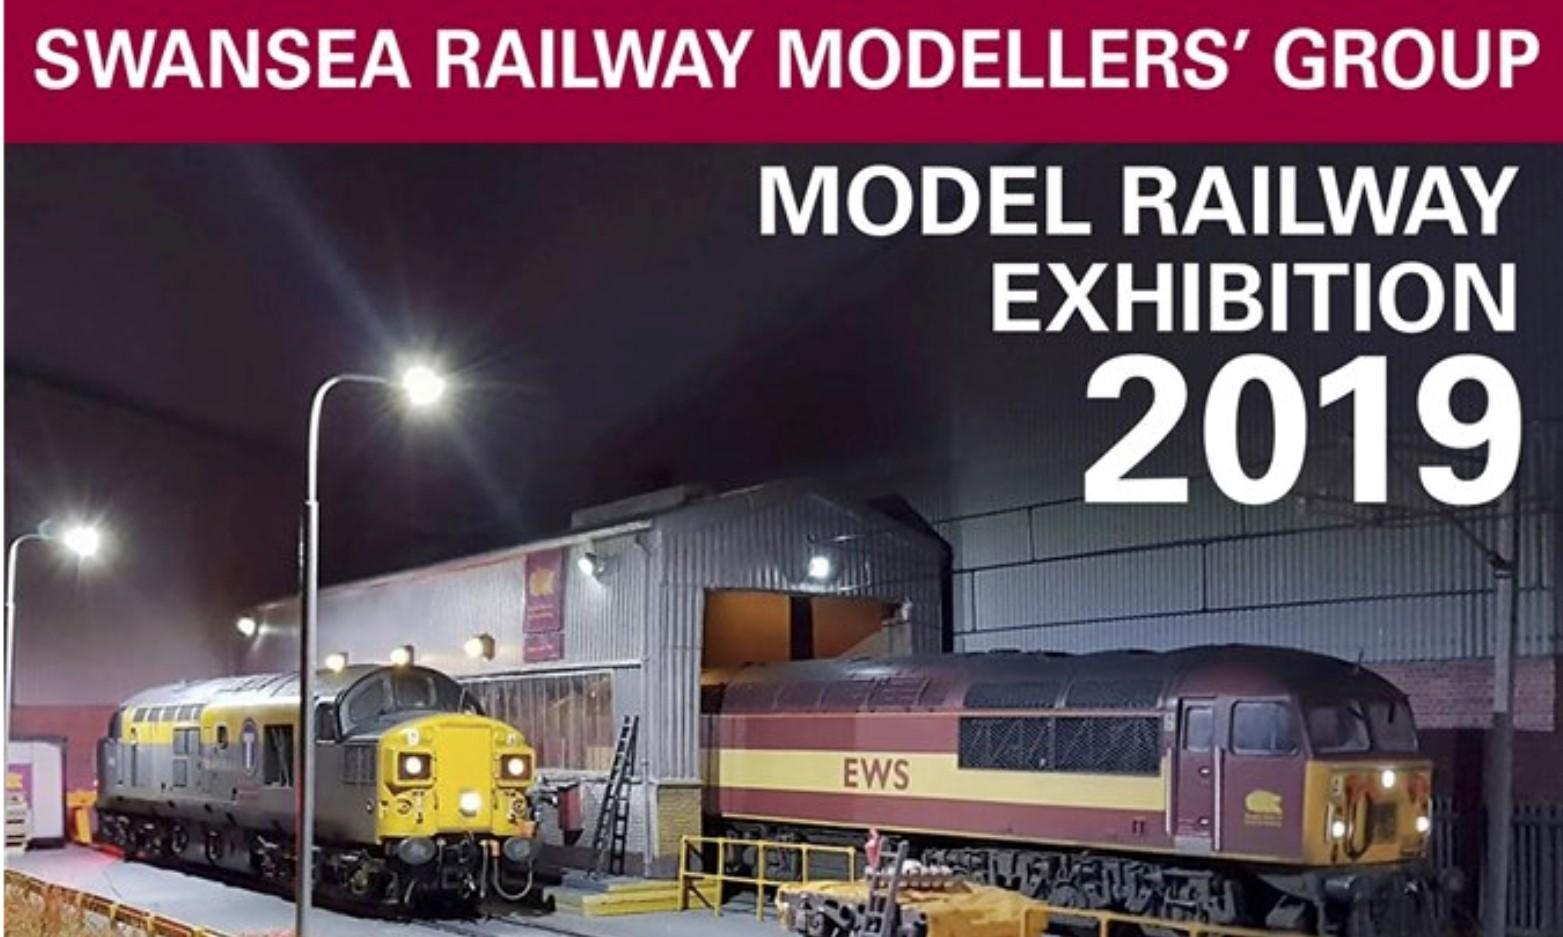 SRMG's Model Railway Exhibition in Swansea